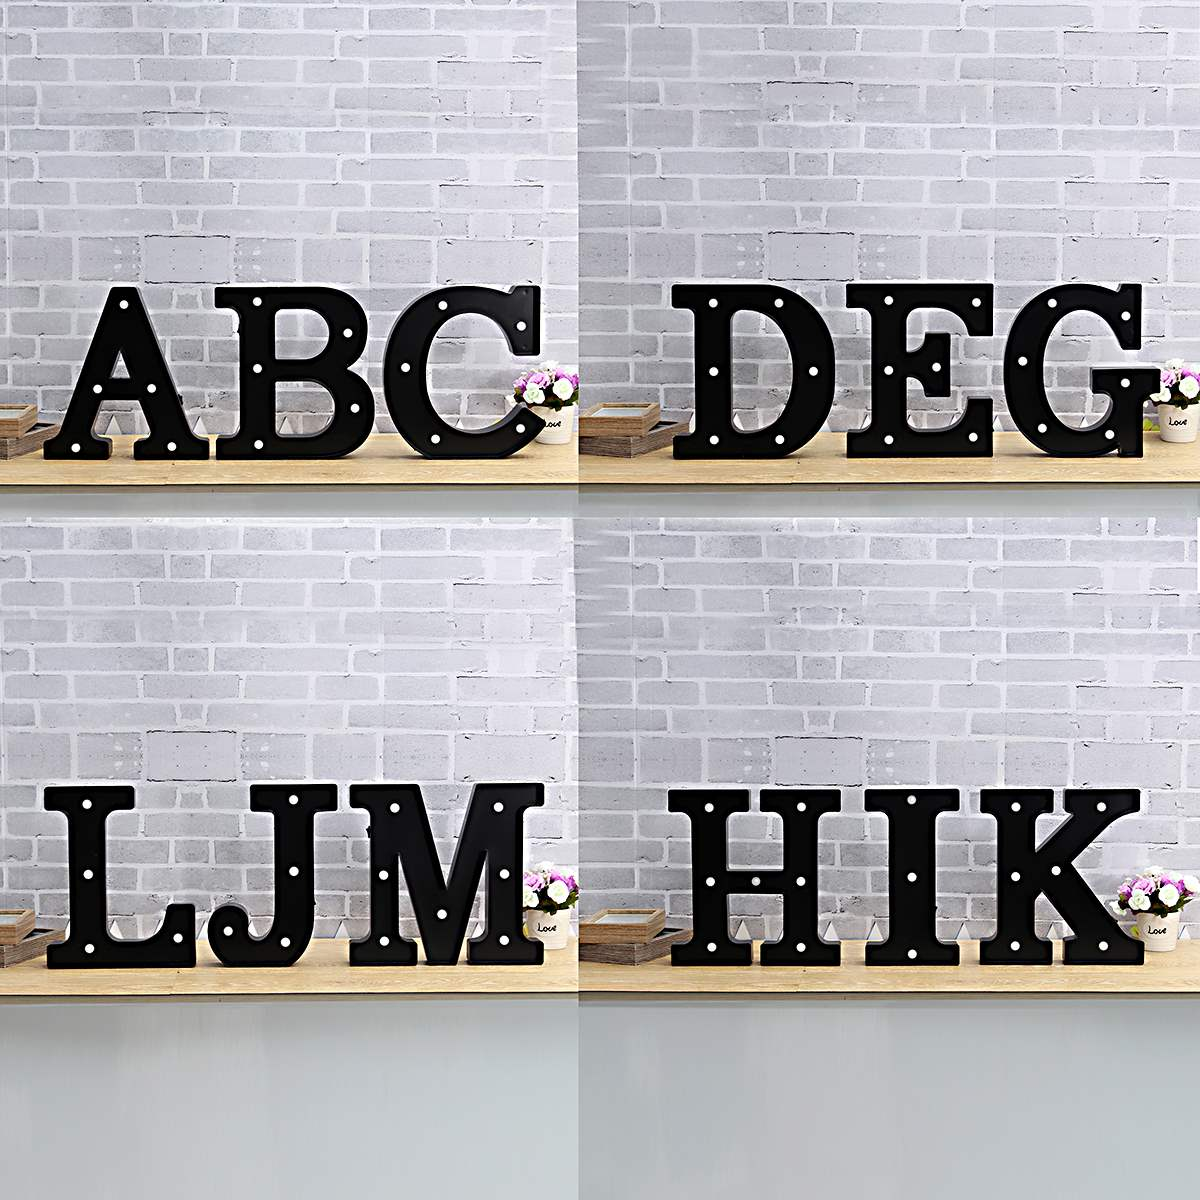 Hot Sale LED Night Light Lamp Kids Marquee Letter Light Vintage Alphabet Circus Style Light Up Christmas Decor Lamp White 12Inch best price led night light lamp kids marquee letter light vintage alphabet circus style light up christmas lamp white 12inch